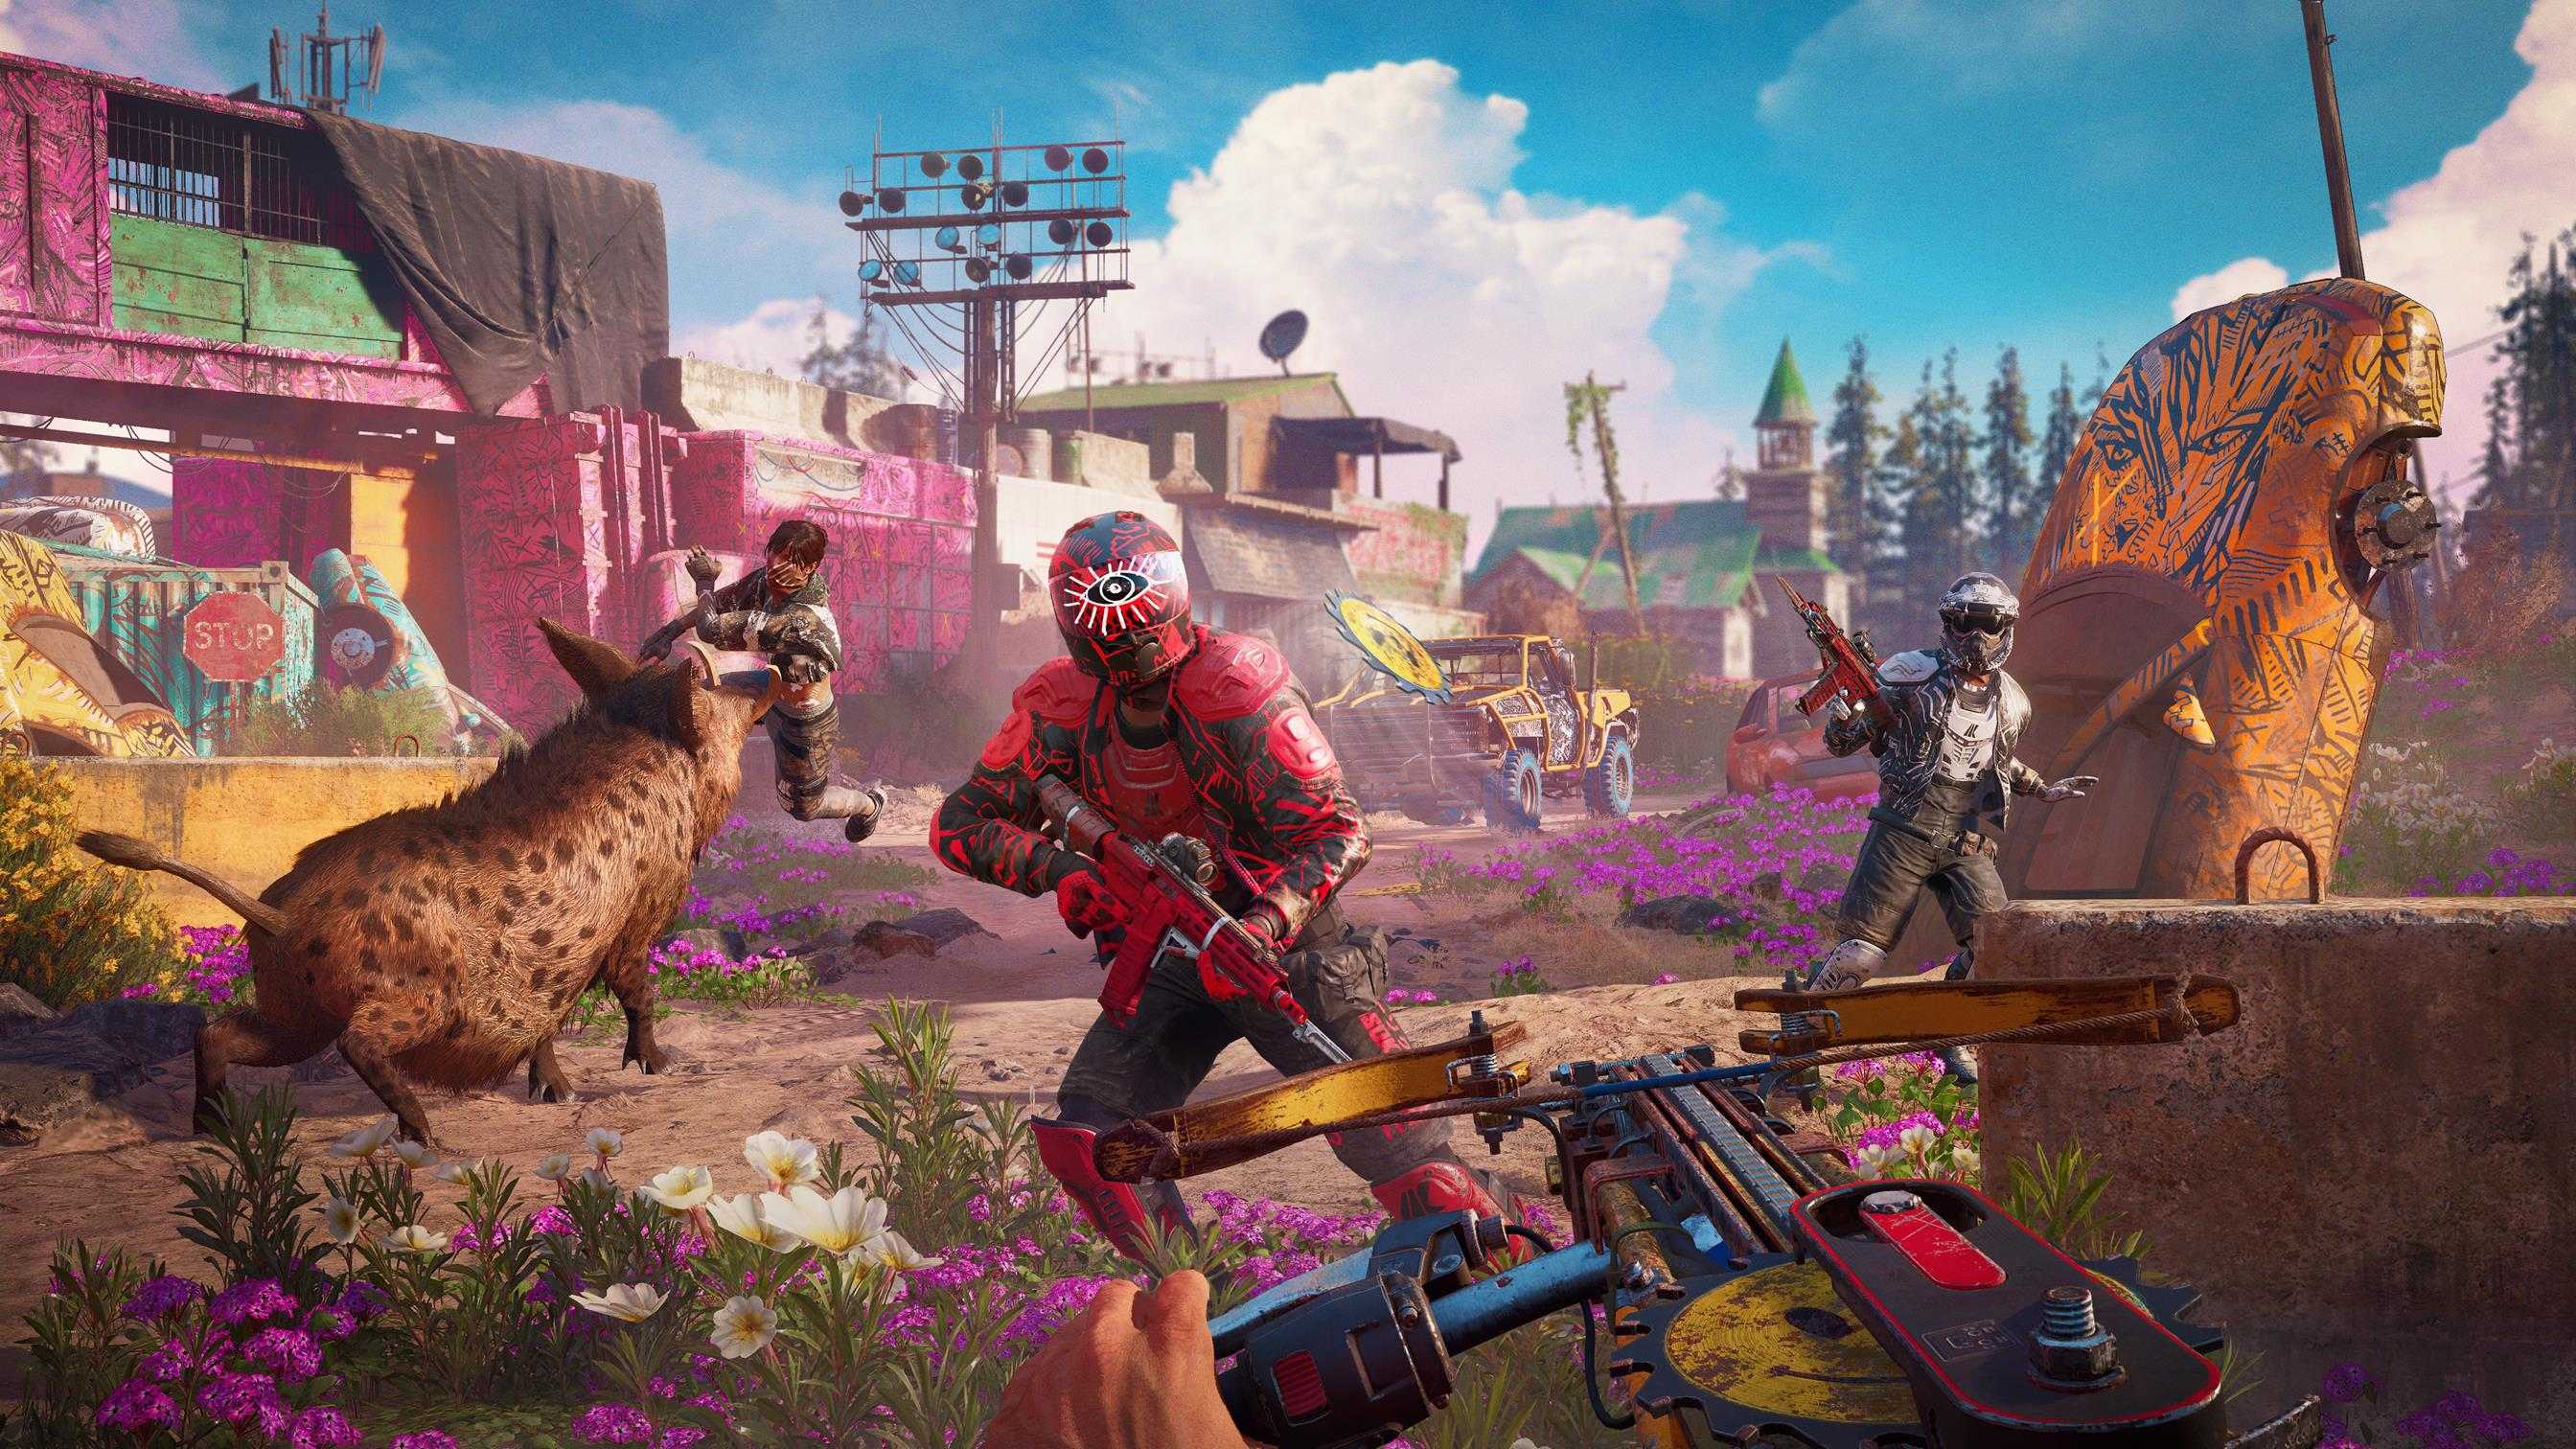 Far Cry New Dawn PC specs revealed for 720p, 1080p, 4K - VG247